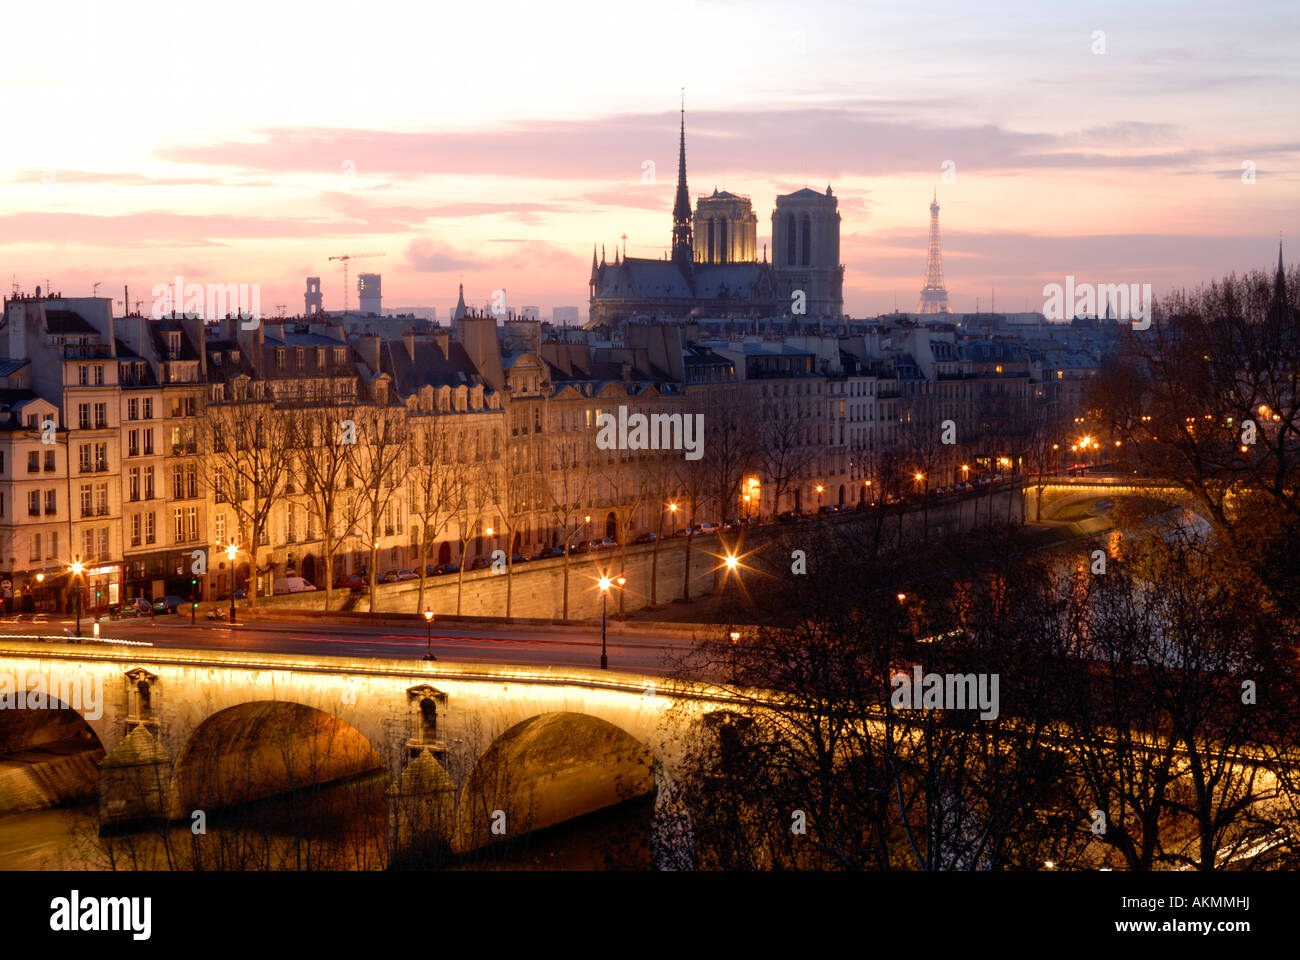 France, Paris, Pont Marie above Seine river, Ile Saint Louis, Notre Dame cathedral and the Eiffel Tower in the background - Stock Image